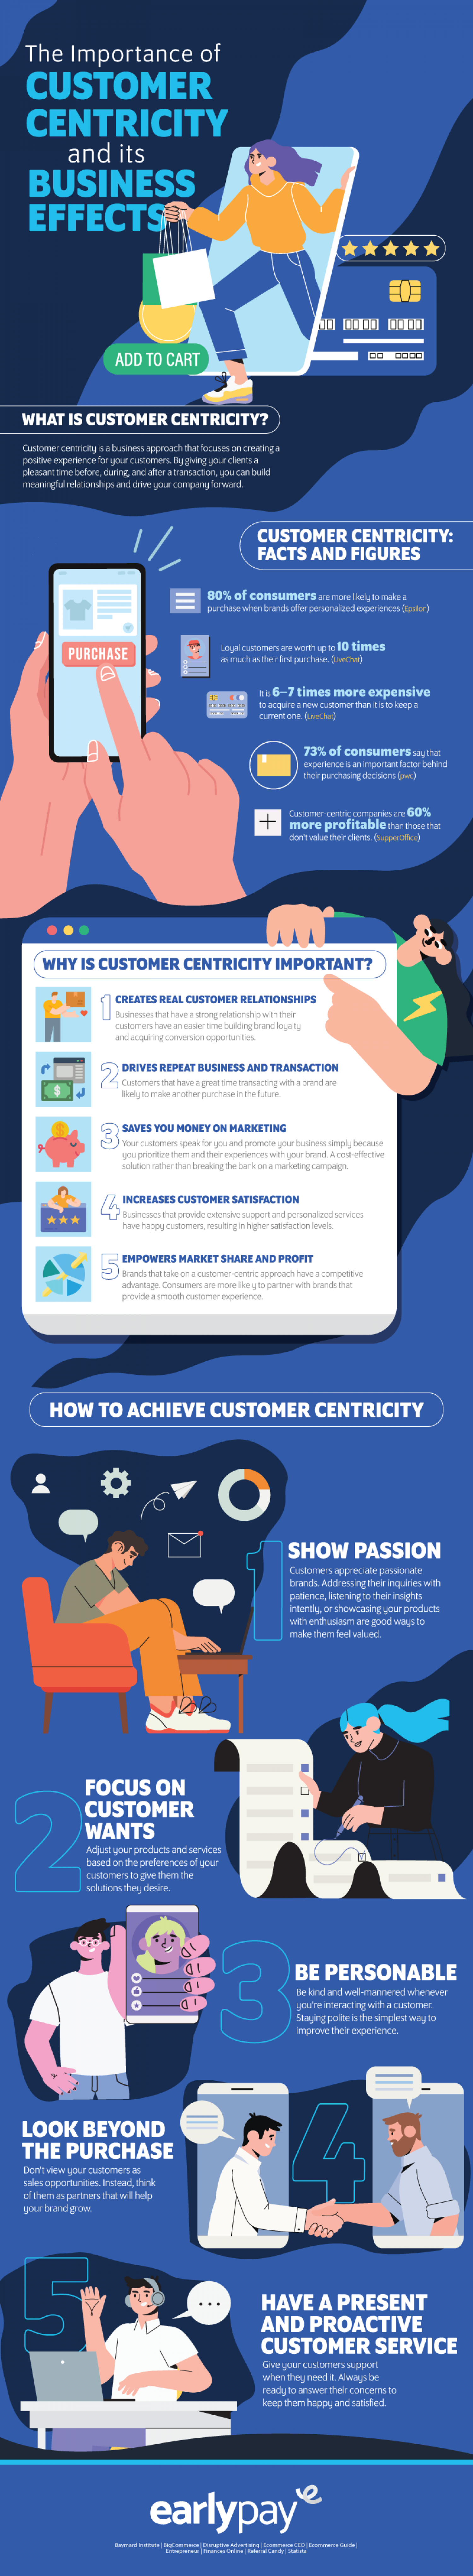 The Importance of Customer Centricity and Its Business Effects Infographic